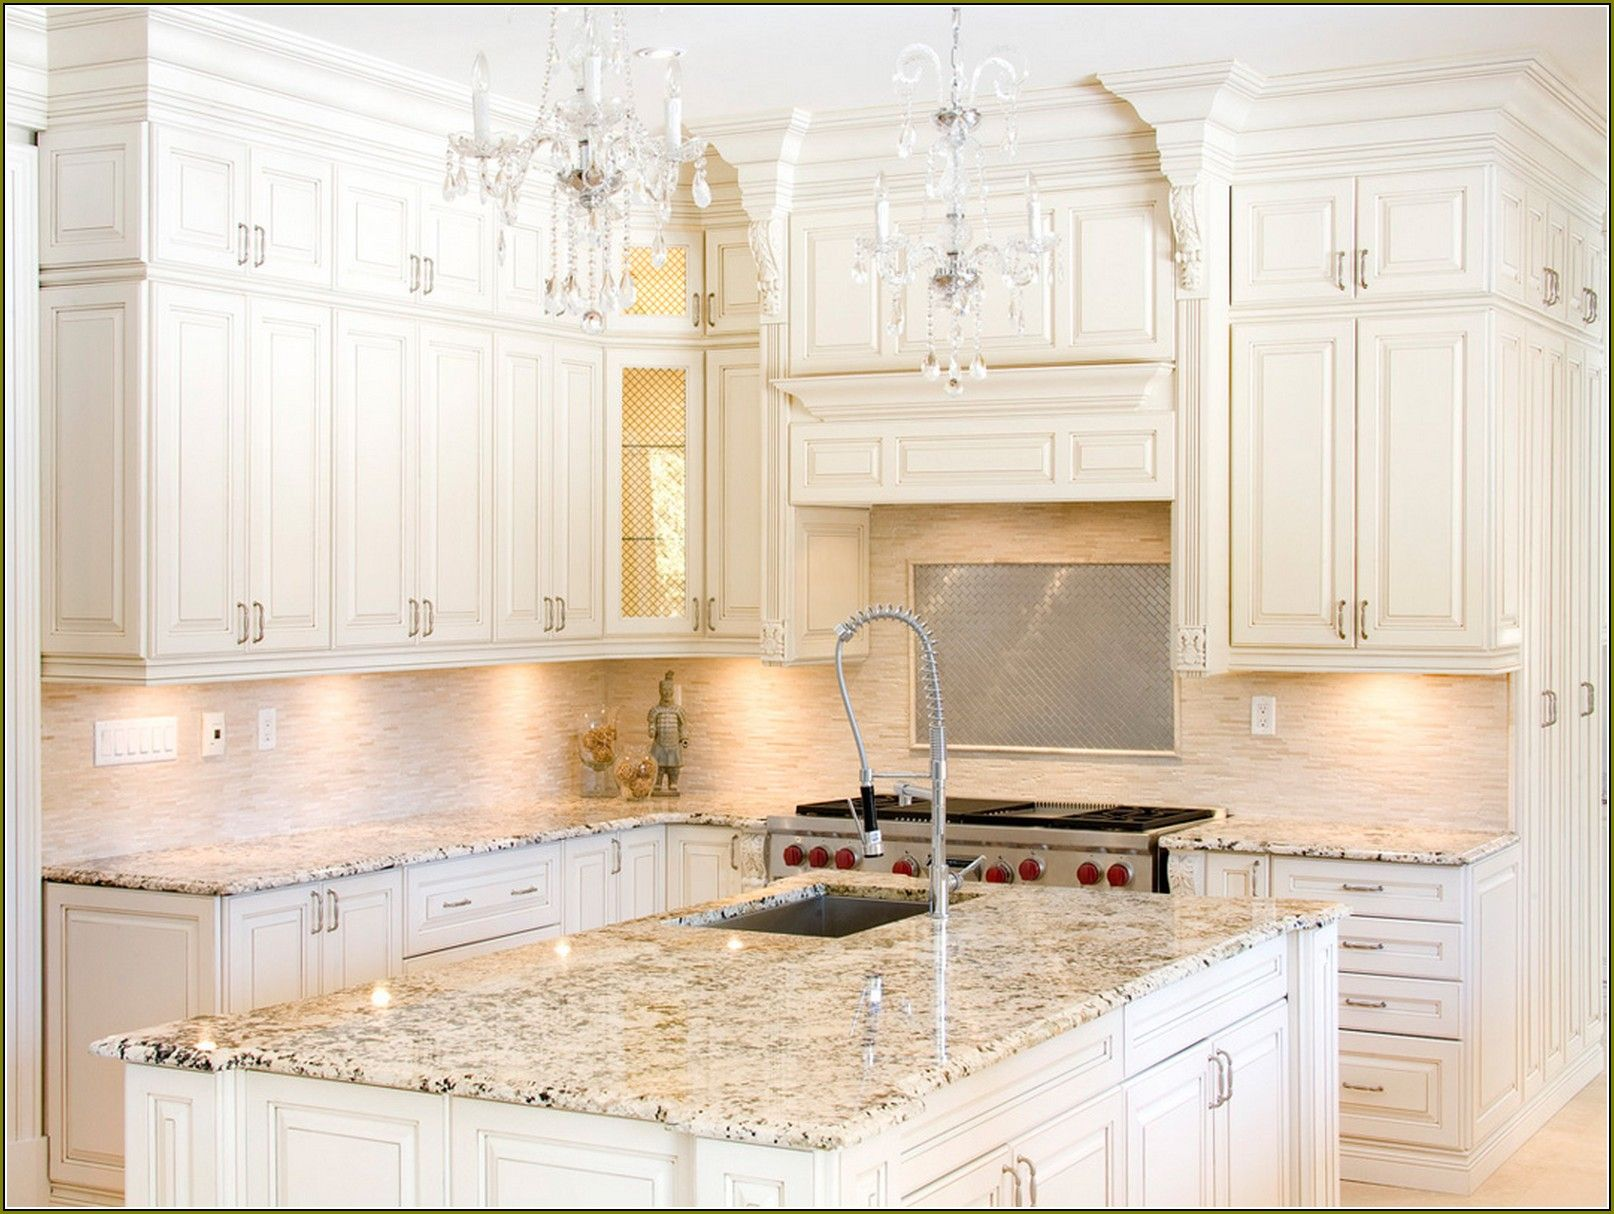 Kitchen Backsplash For Light Cabinets kitchen granite countertops tile cupboards | house: kitchen